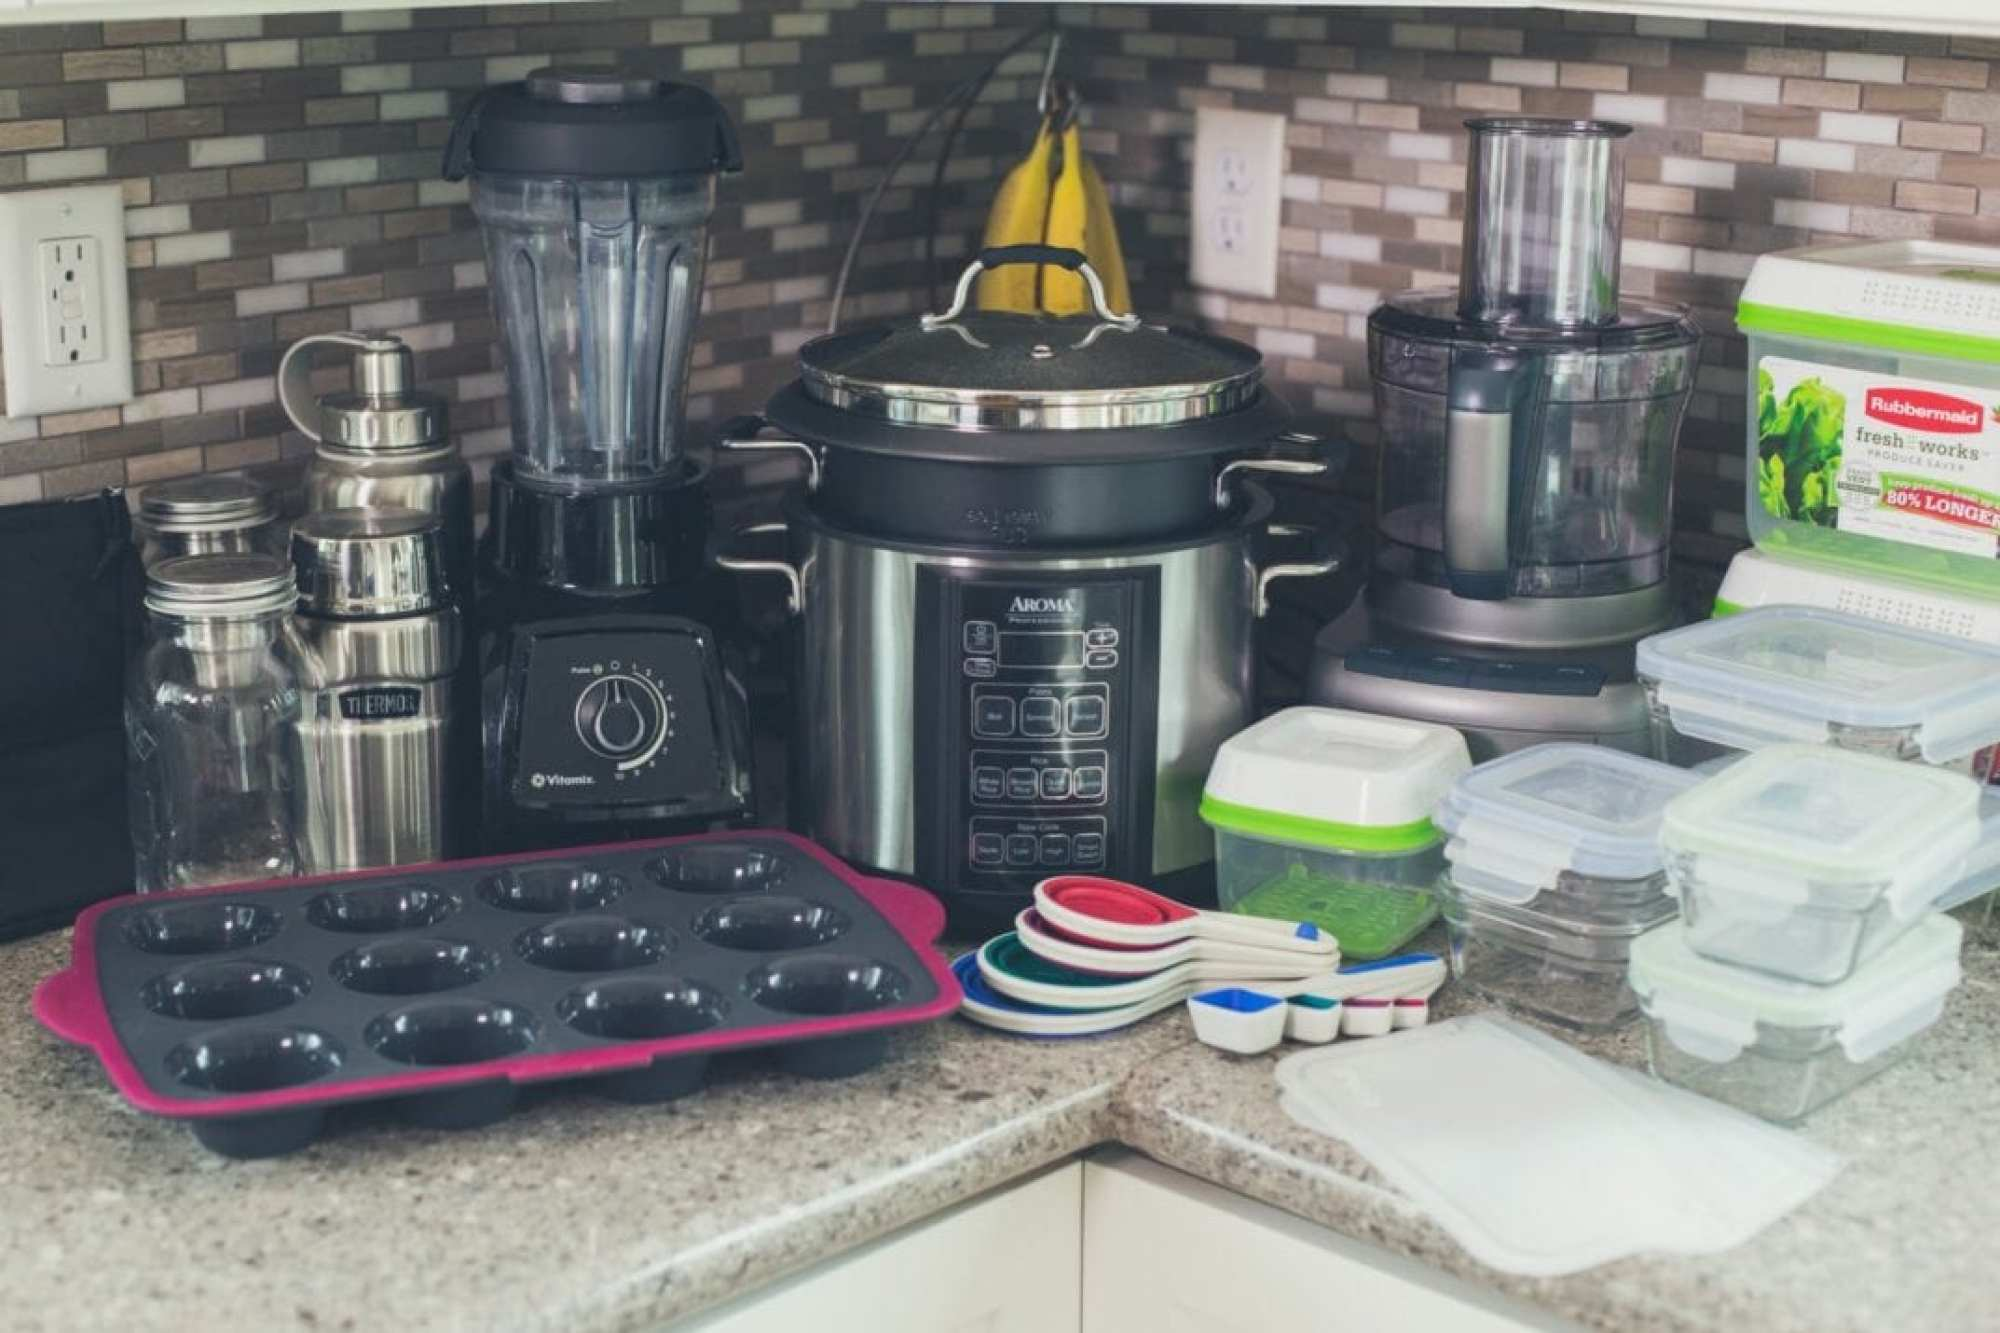 Bed Bath and Beyond Kitchen Accessories for Meal Prep